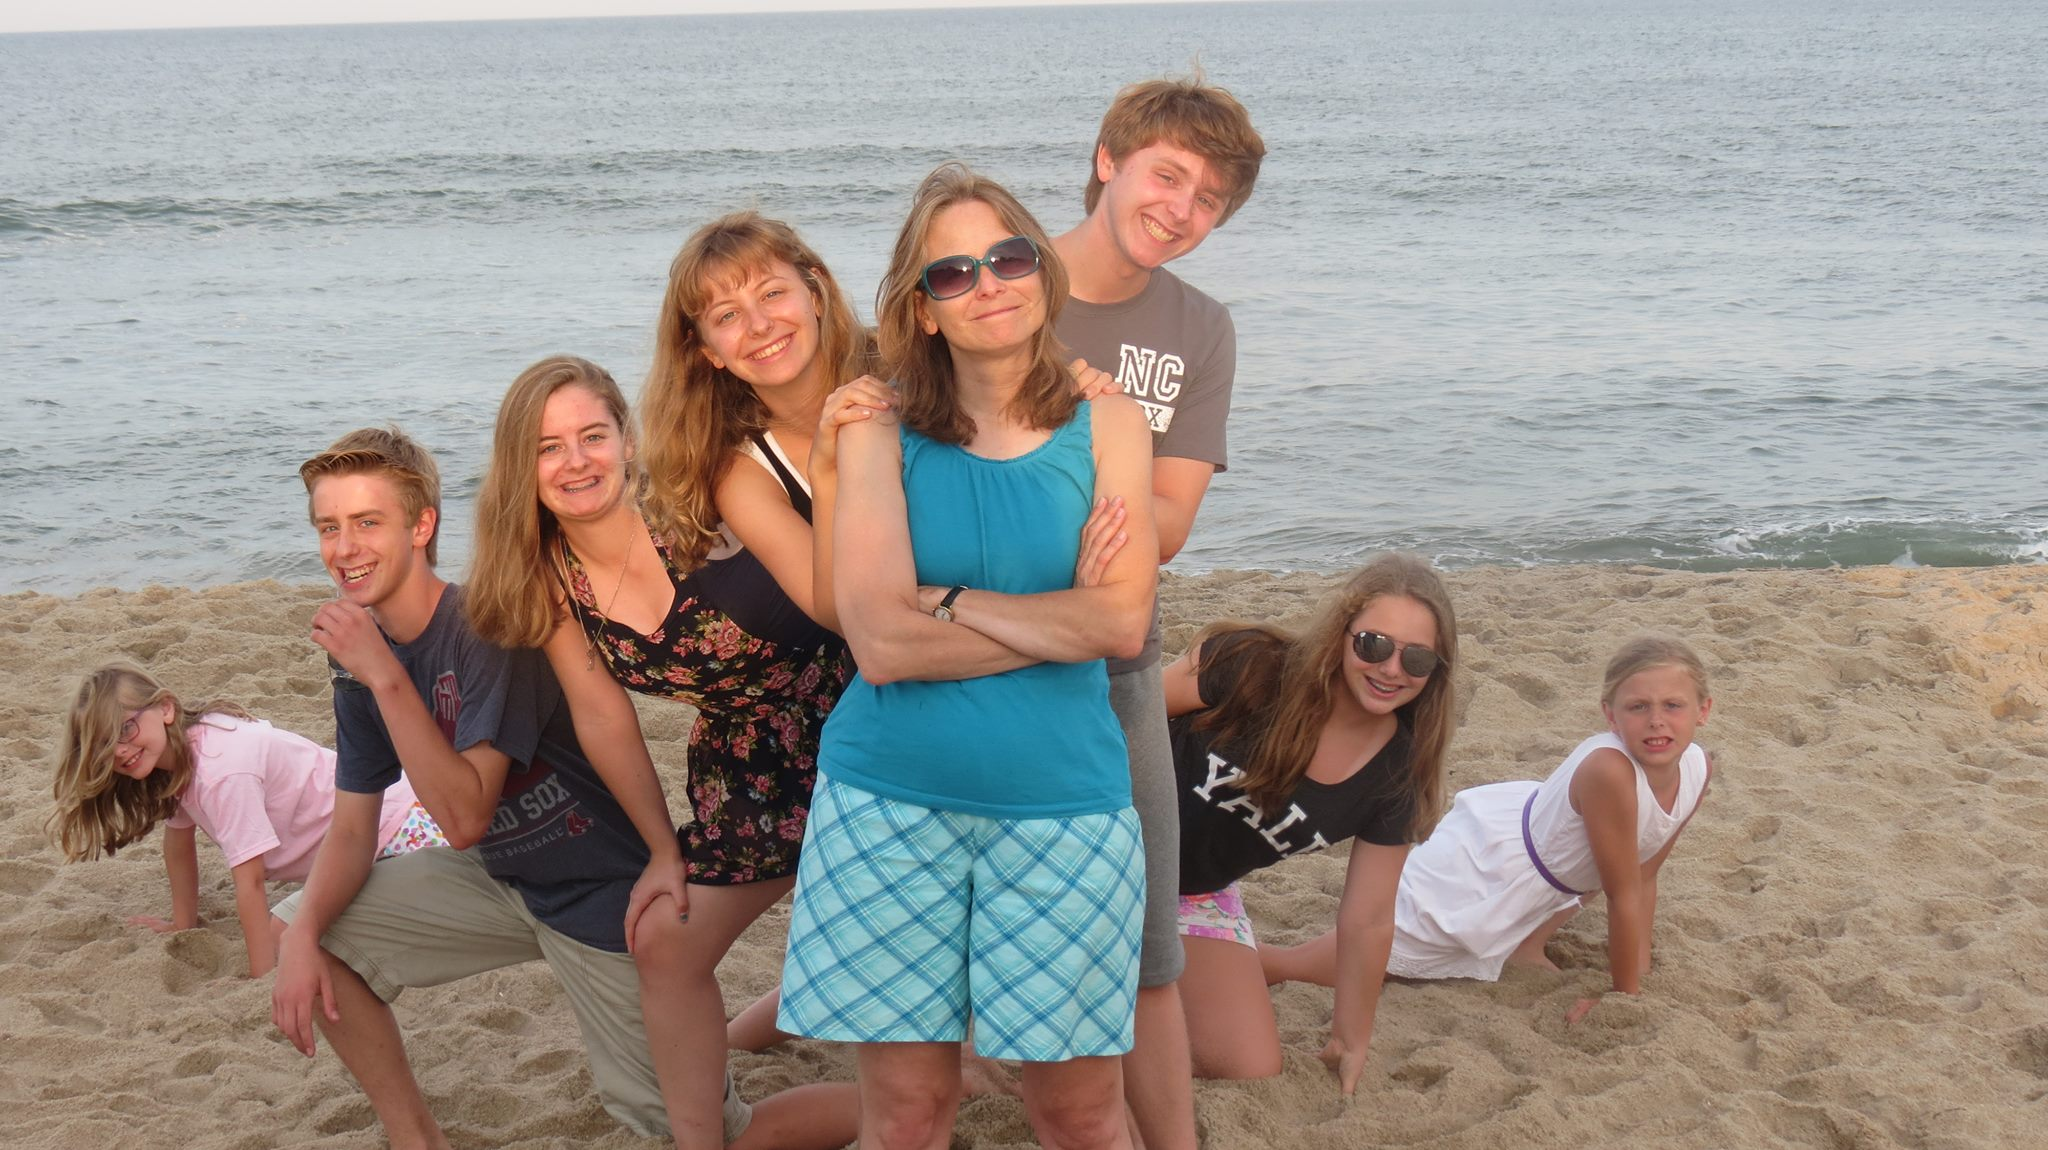 Helen and her 7 kids in the Outer Banks, 2013